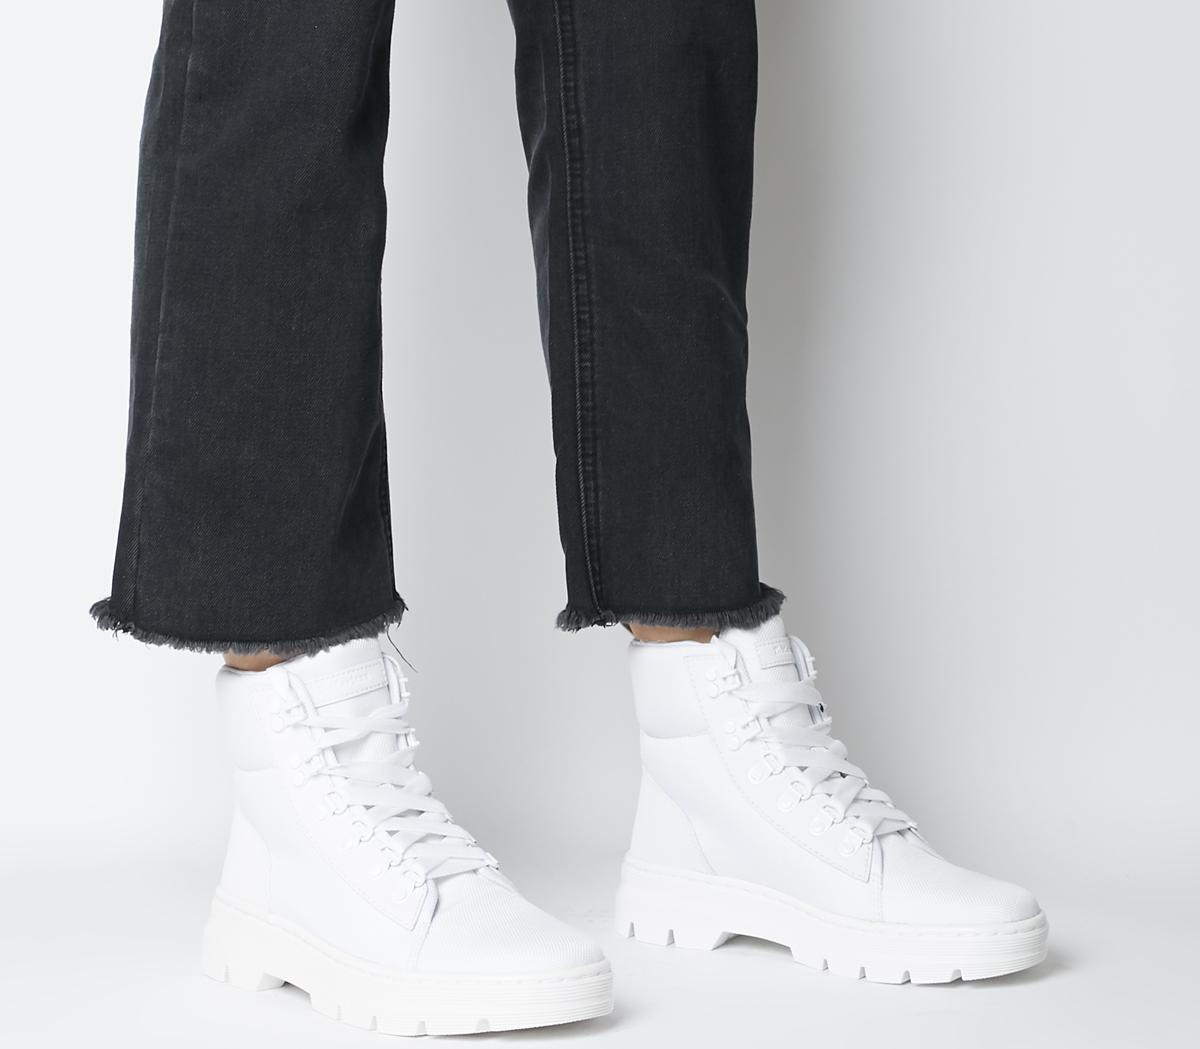 Dr. Martens Combs 6 Tie Boots White